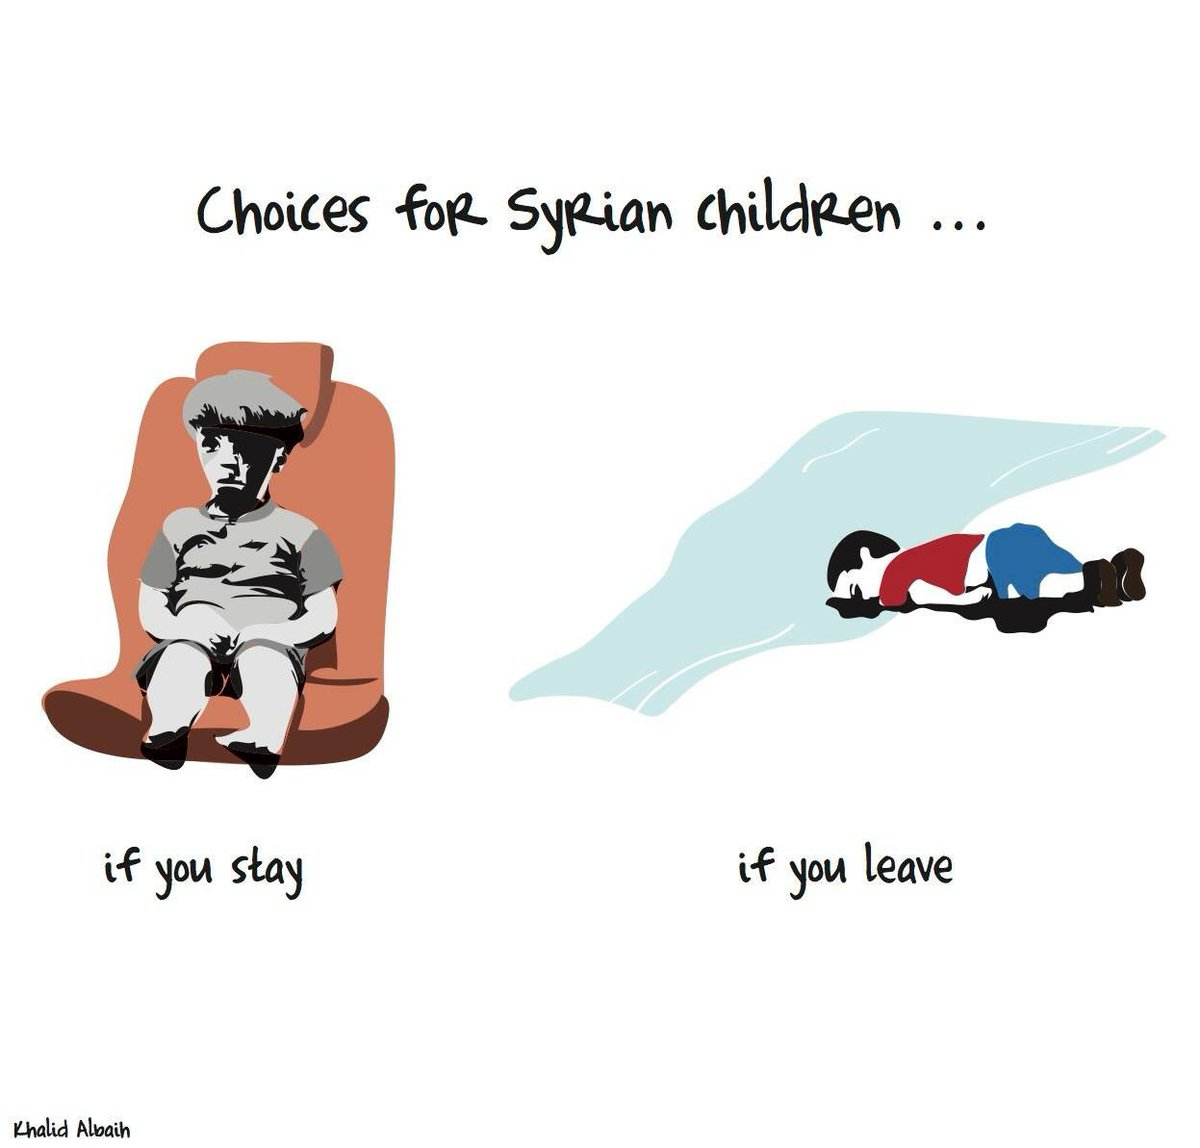 Choices for Syrian Children - Omran Daqneesh, 5yr old hit in #Aleppo. 3yr old Aylan Kurdi drowned in the Med. #Syria https://t.co/nWyHPRgDQN